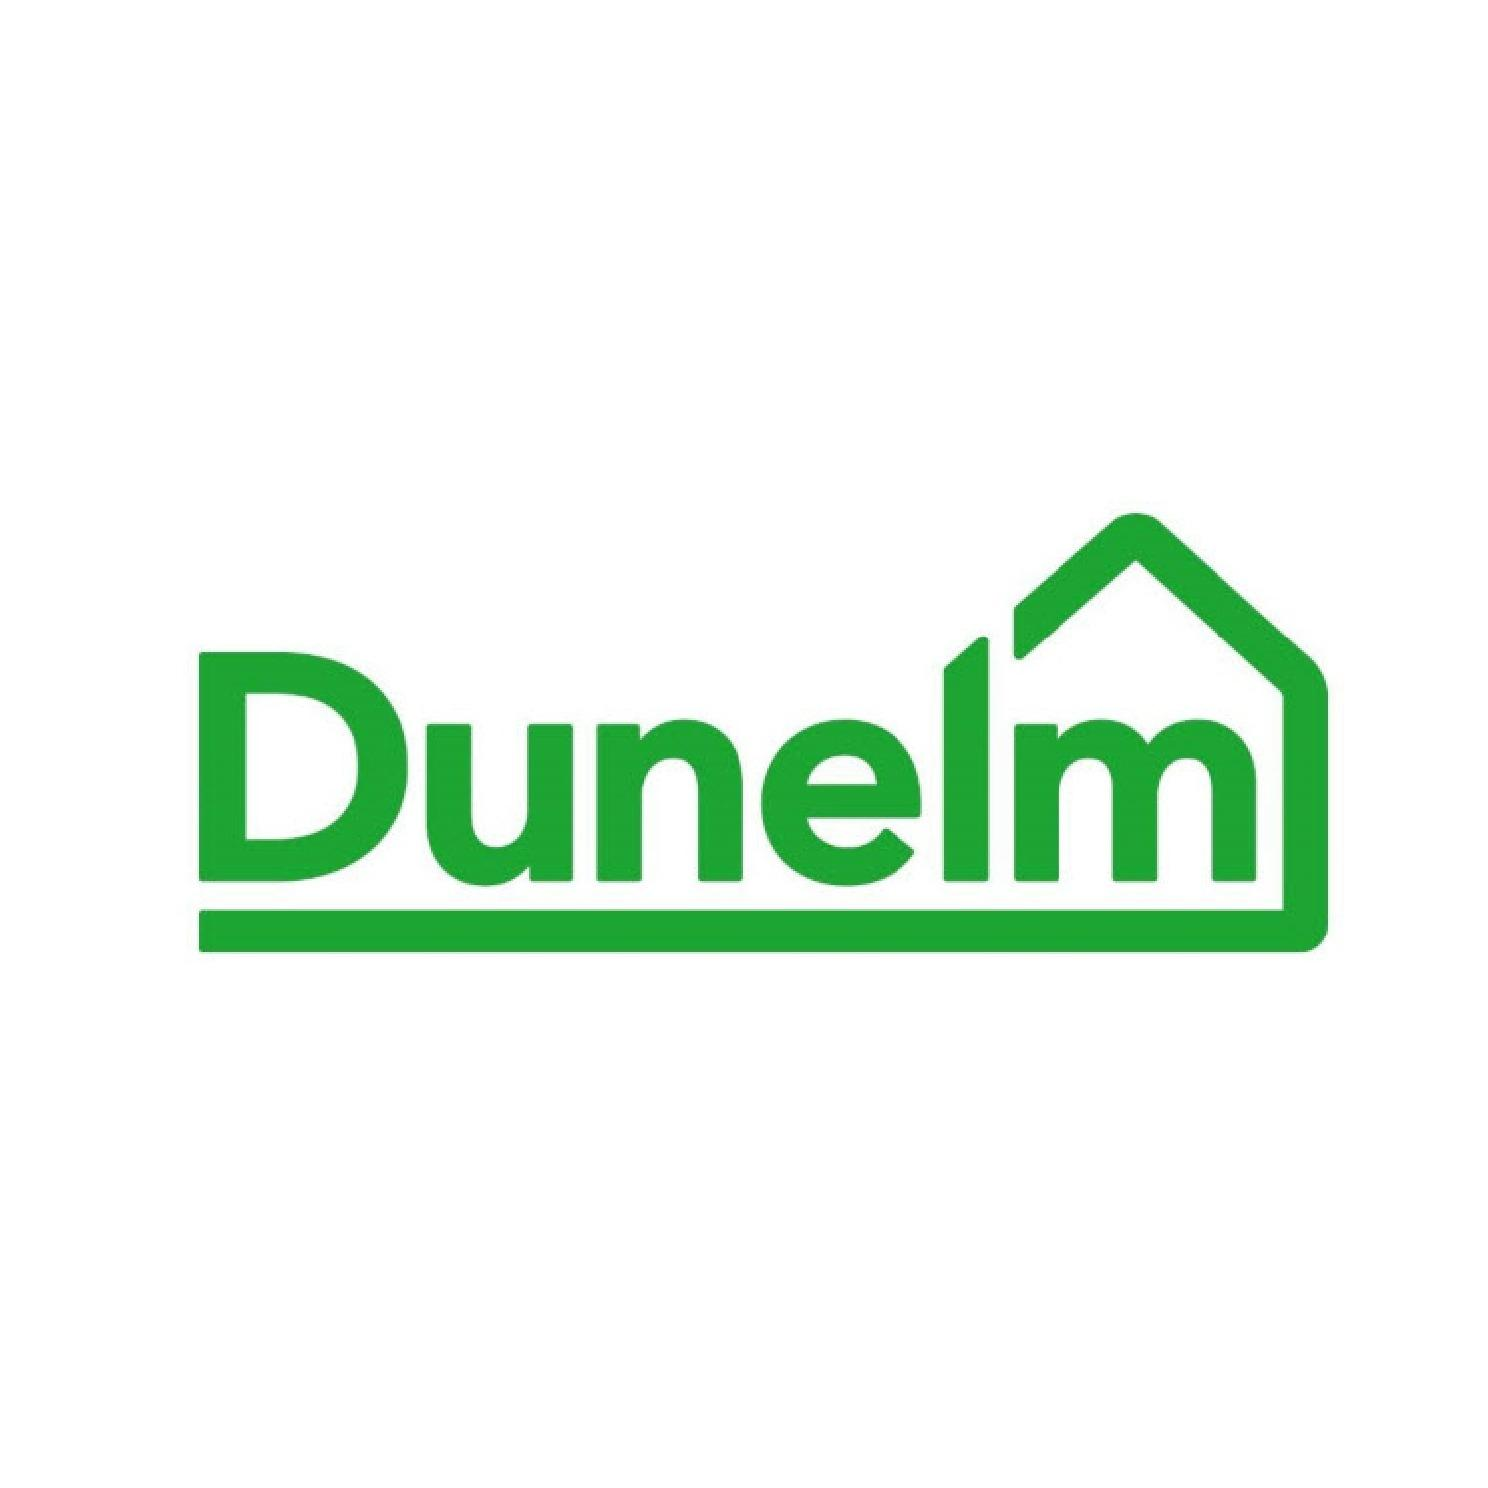 Dunelm - Ilkeston, Derbyshire DE7 8EG - 01159 444754 | ShowMeLocal.com